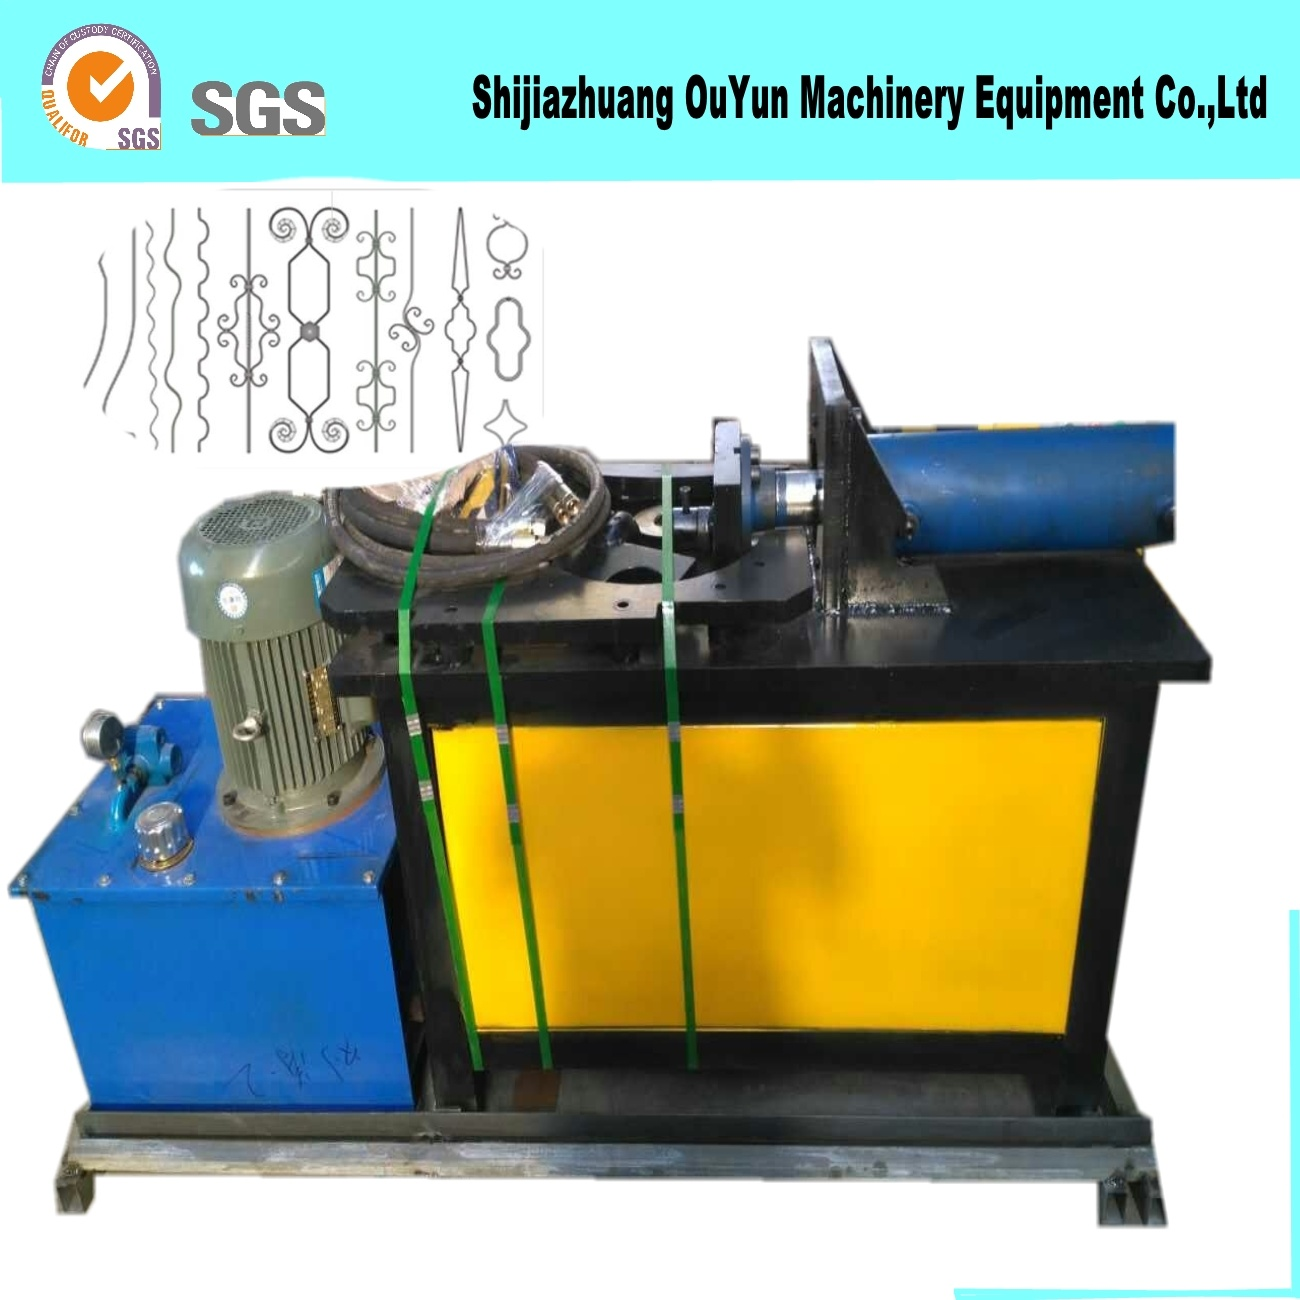 Hydraulic Press Machine/Wrought Iron Moulding Machine for Decorative